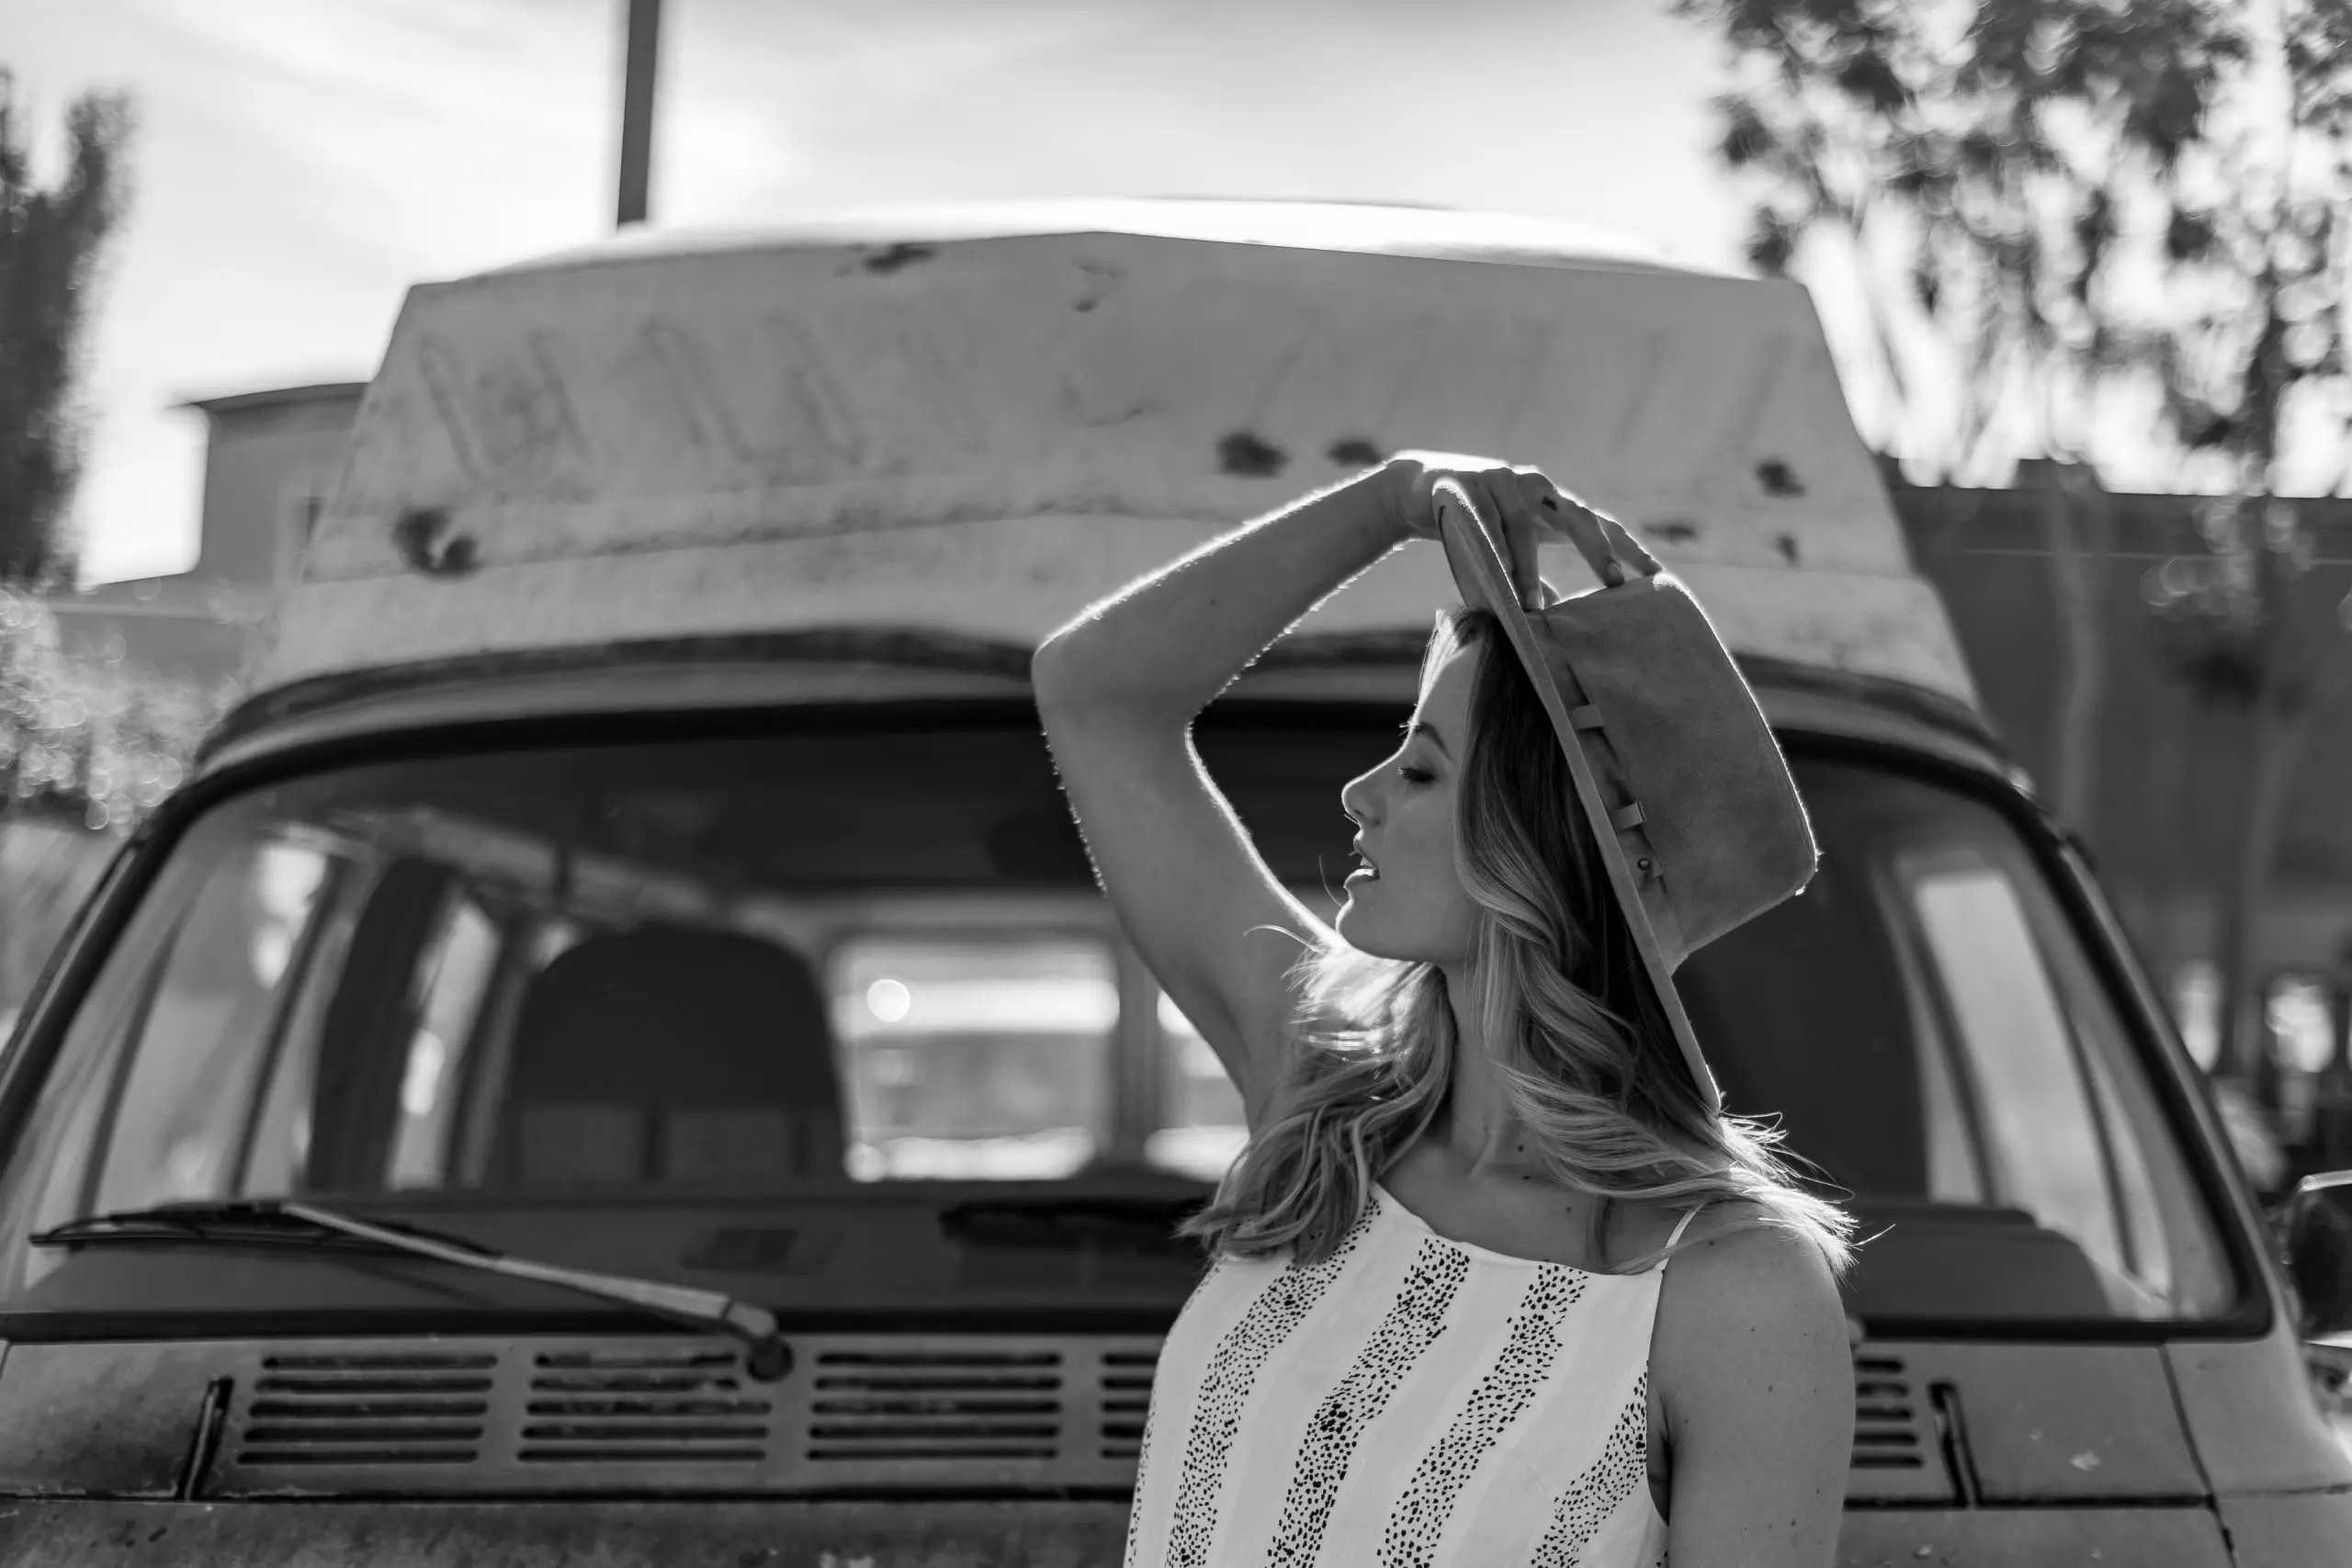 Carly Lane posing with a striped light blue and yellow sun dress in front of an old caravan van that is light brown. Sun flair is used to give the photo a cool blueish tone and cool feel to it.